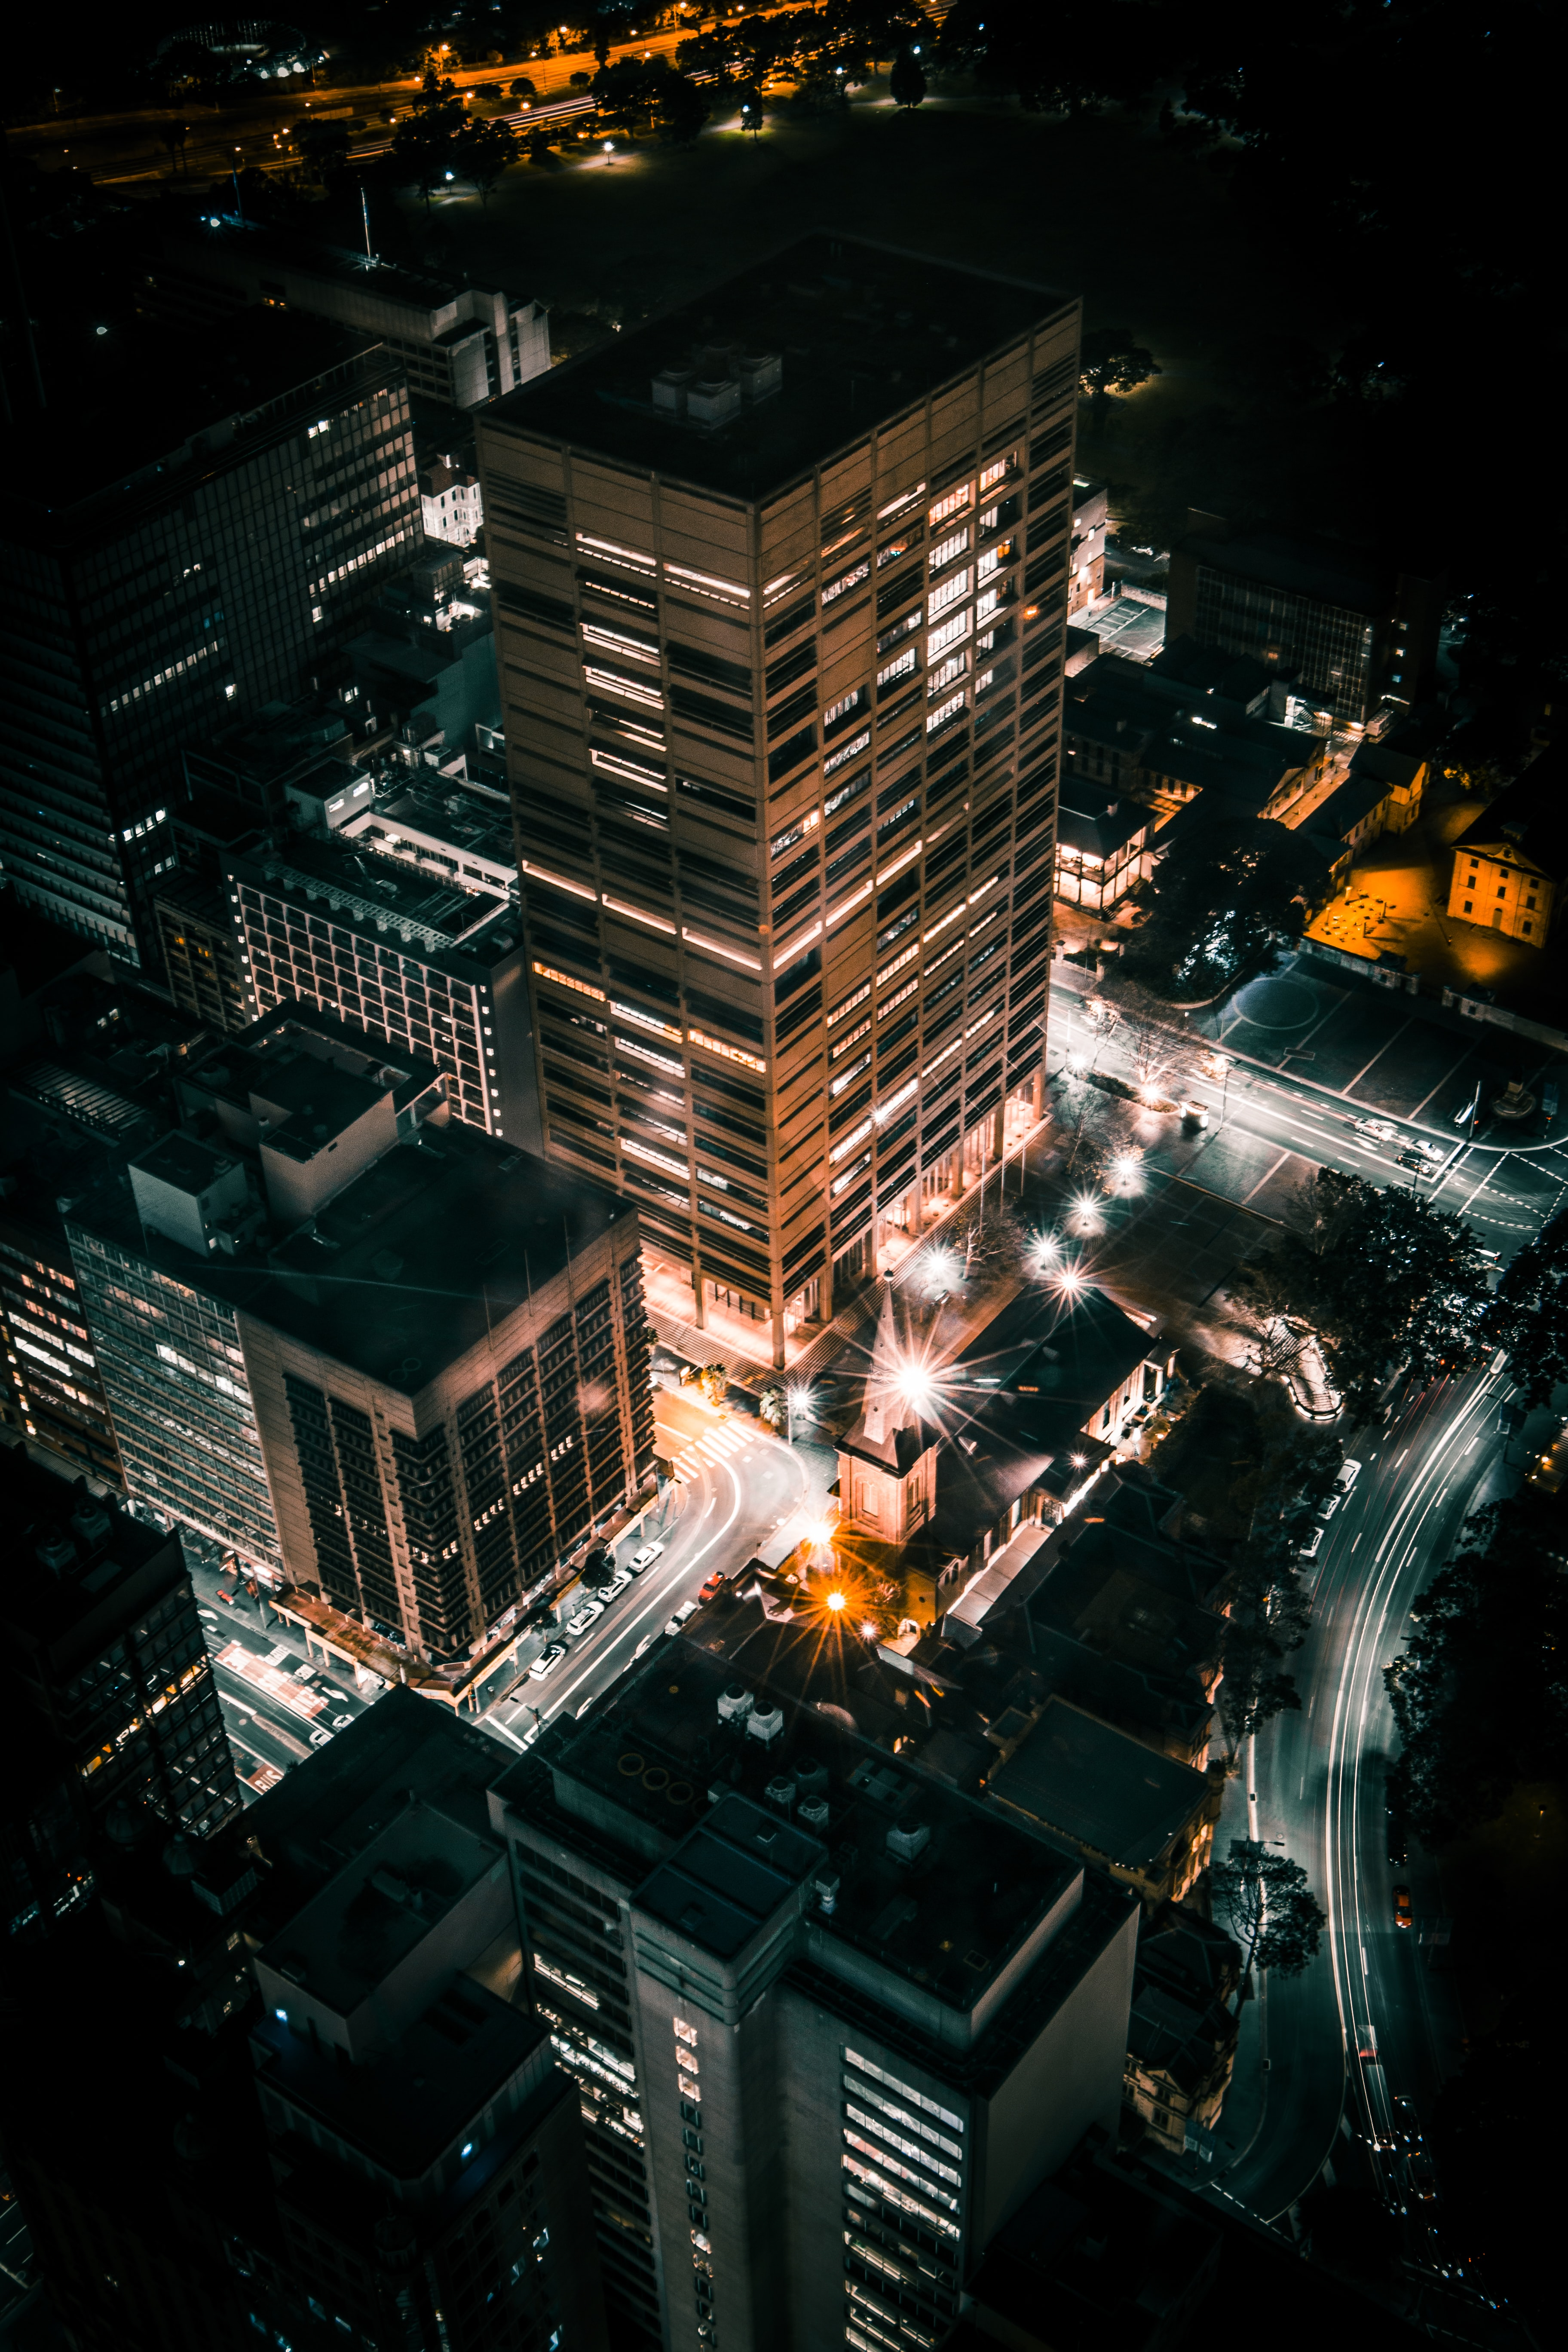 A high shot of tall office buildings in Sydney at night